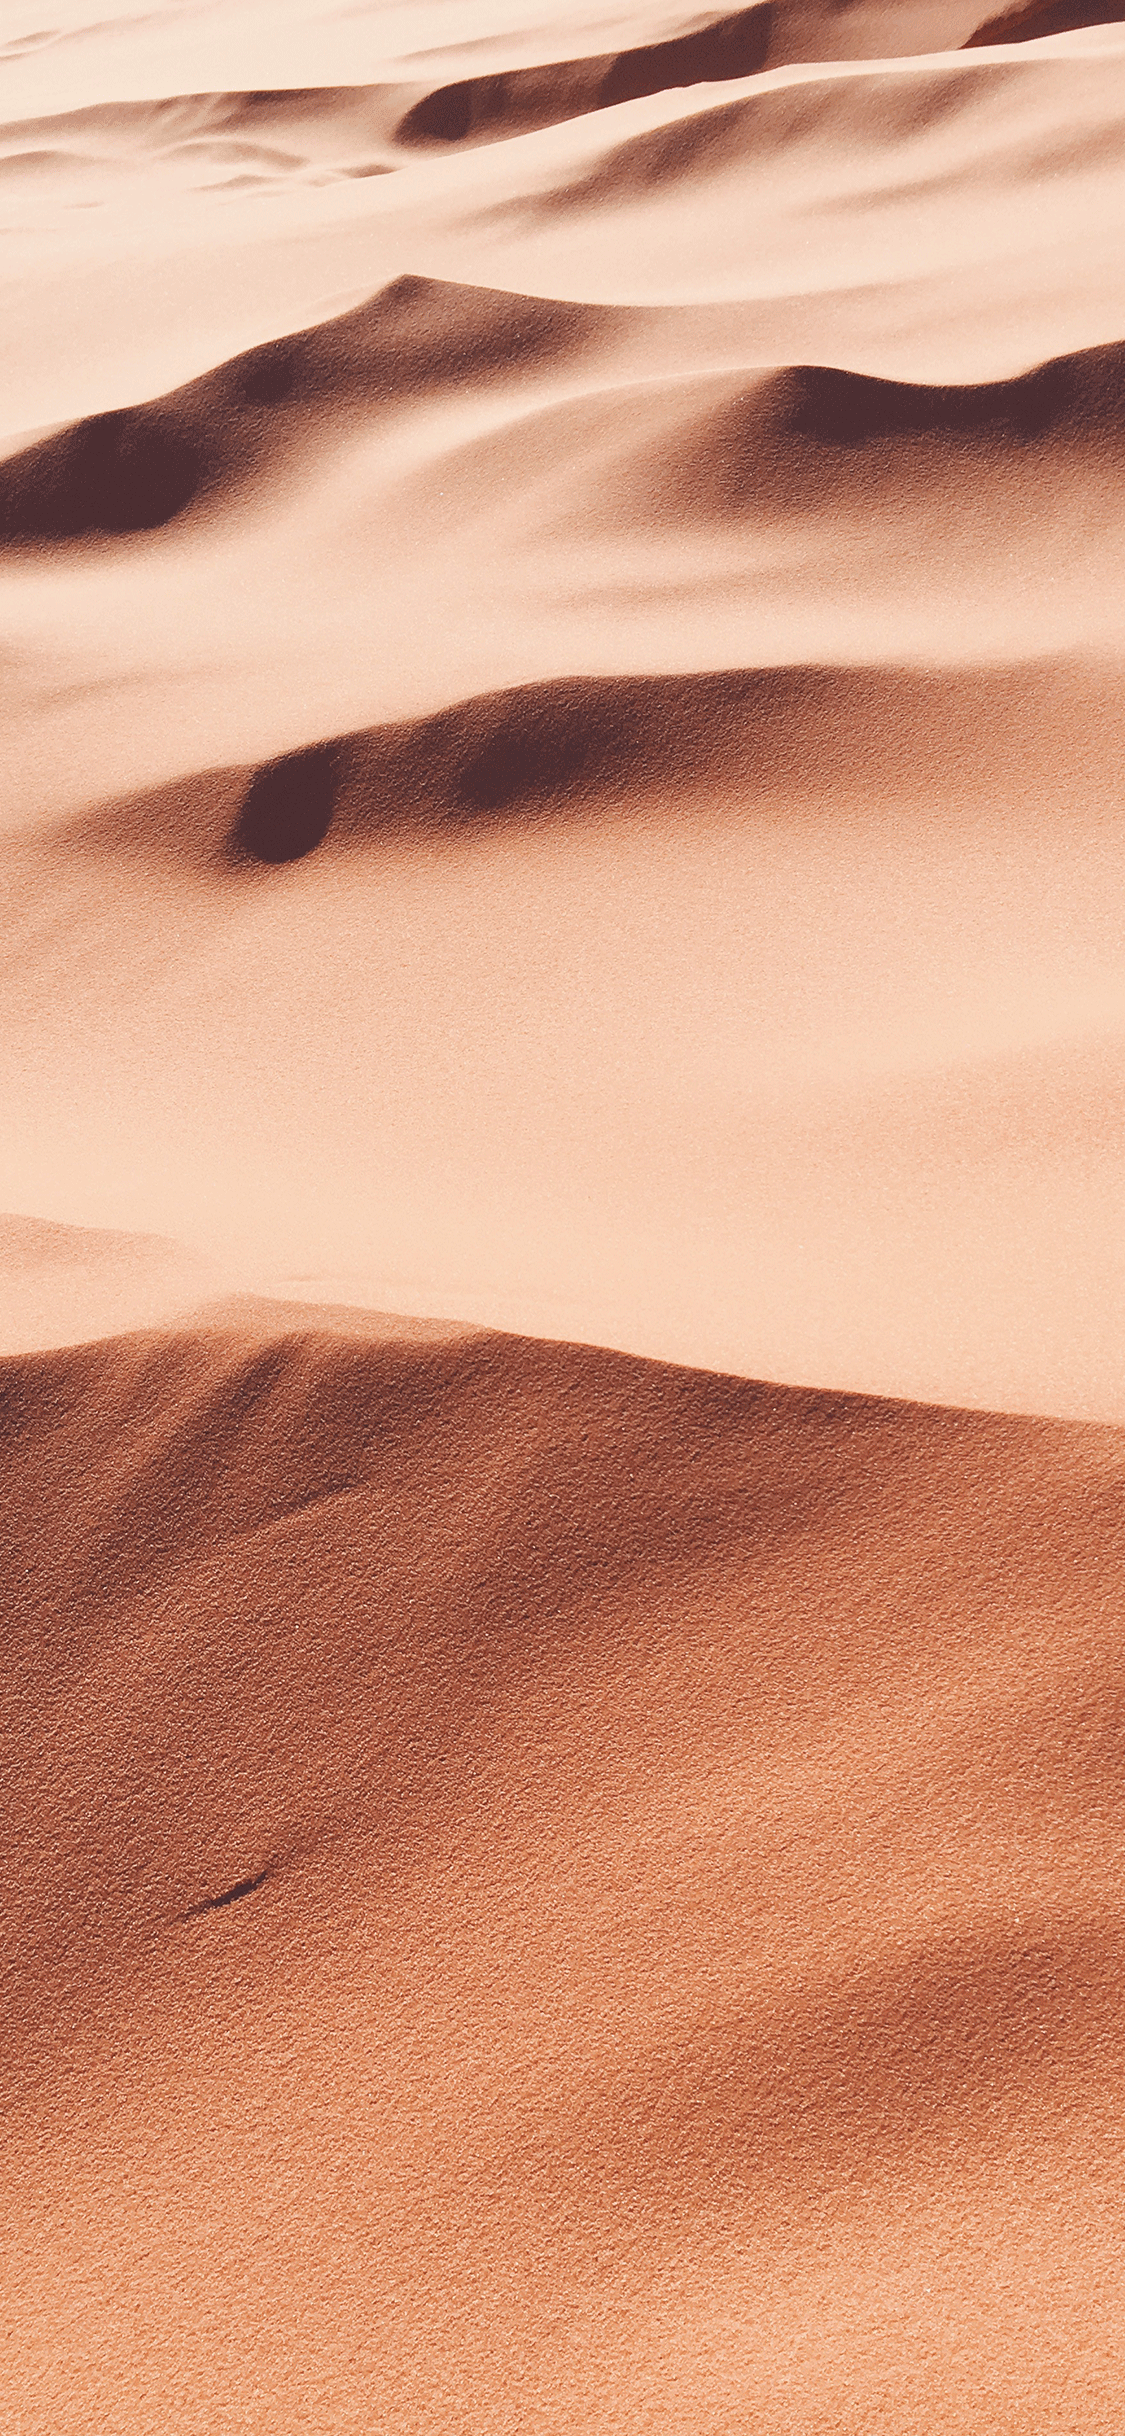 iPhone wallpaper desert kanab Fonds d'écran iPhone du 30/08/2018